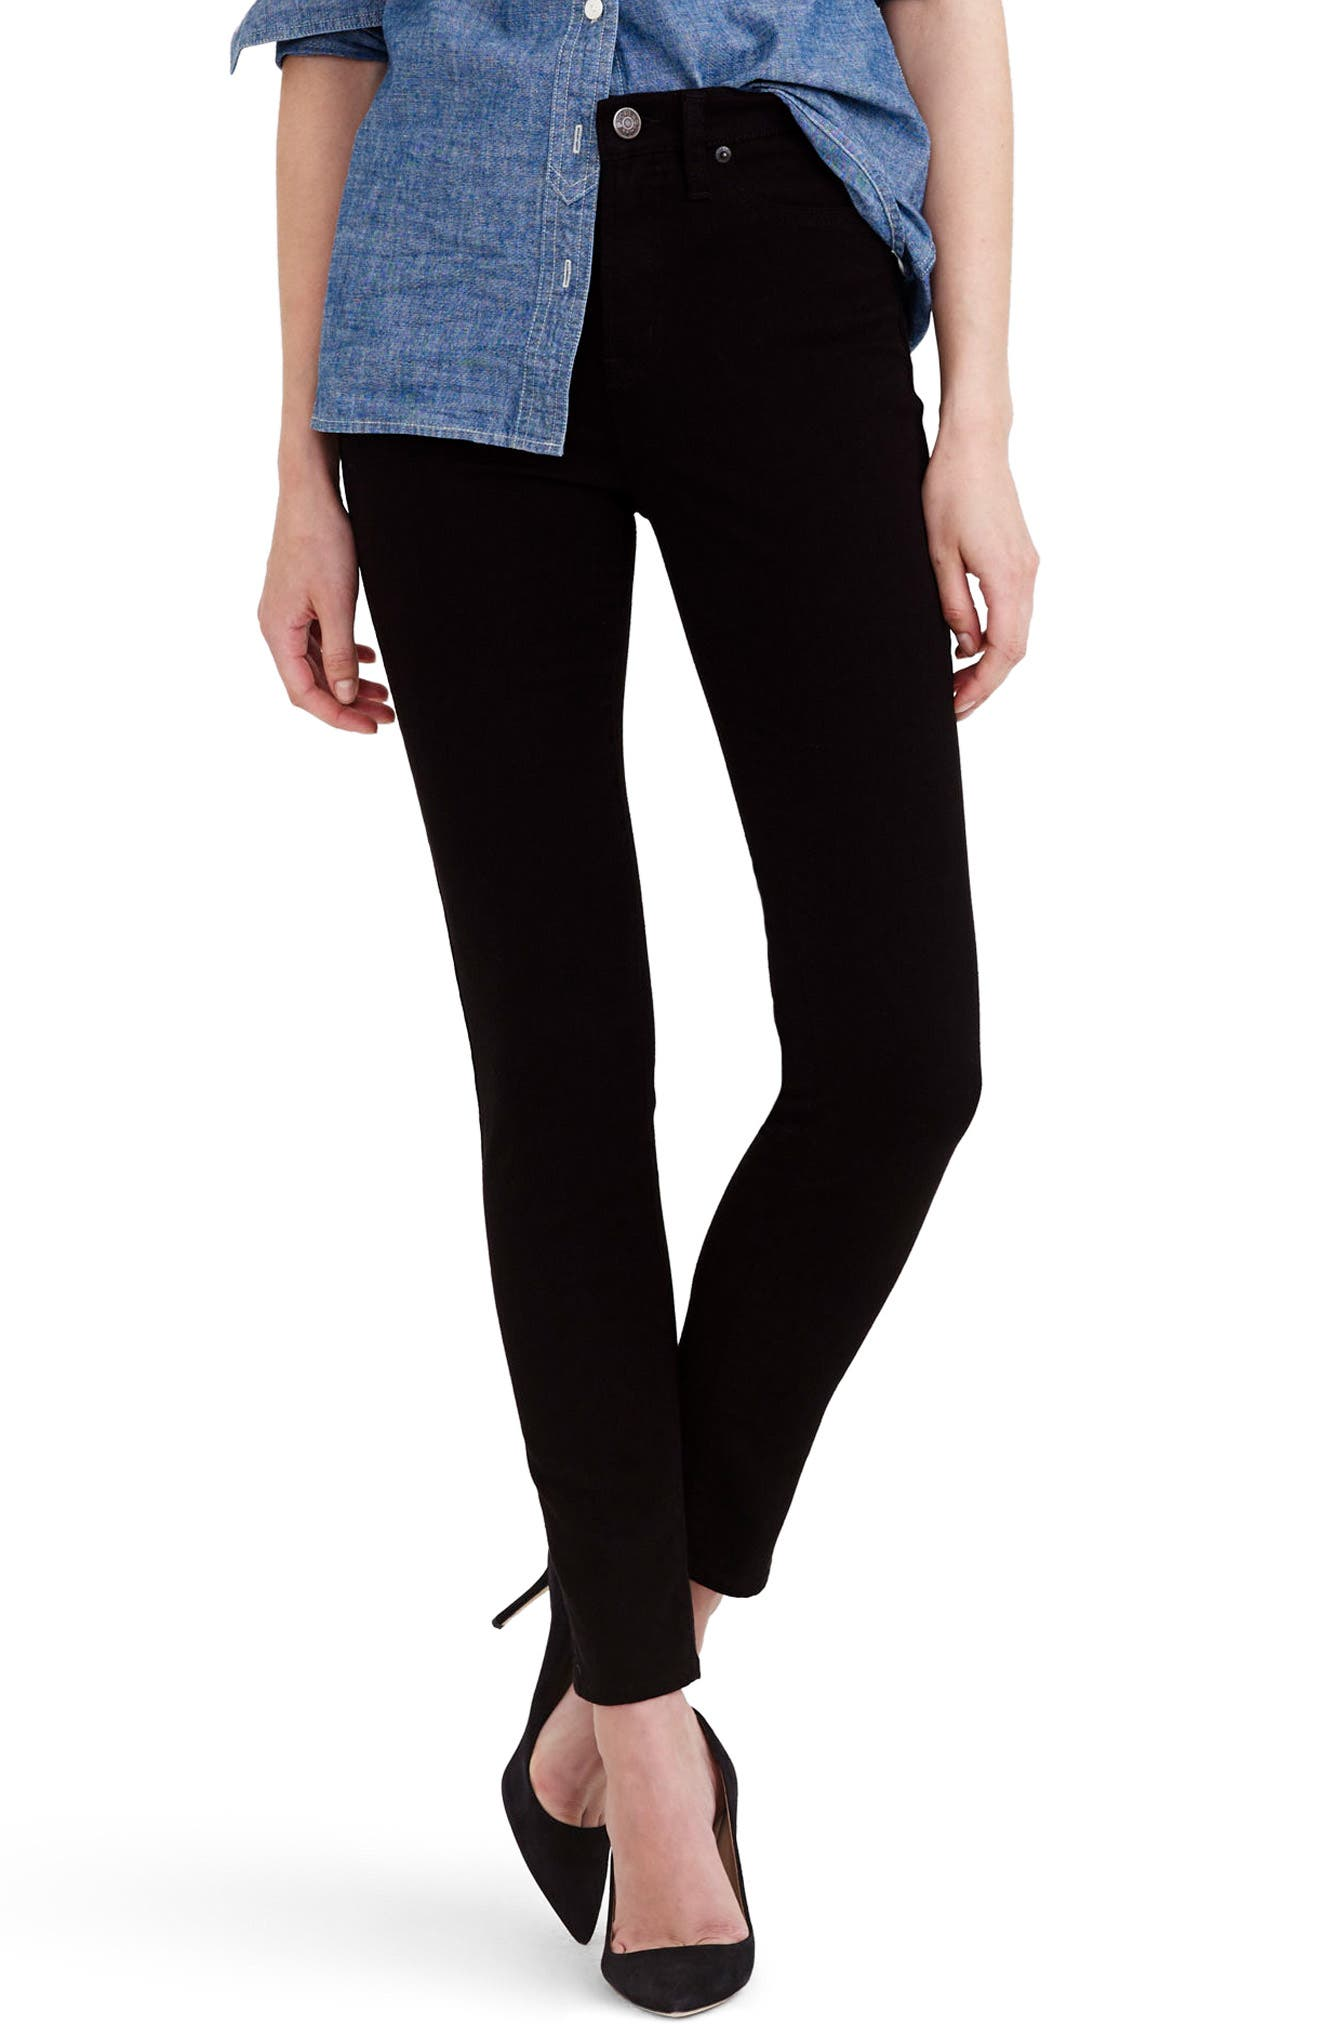 Lookout High Rise Jeans,                             Main thumbnail 1, color,                             001